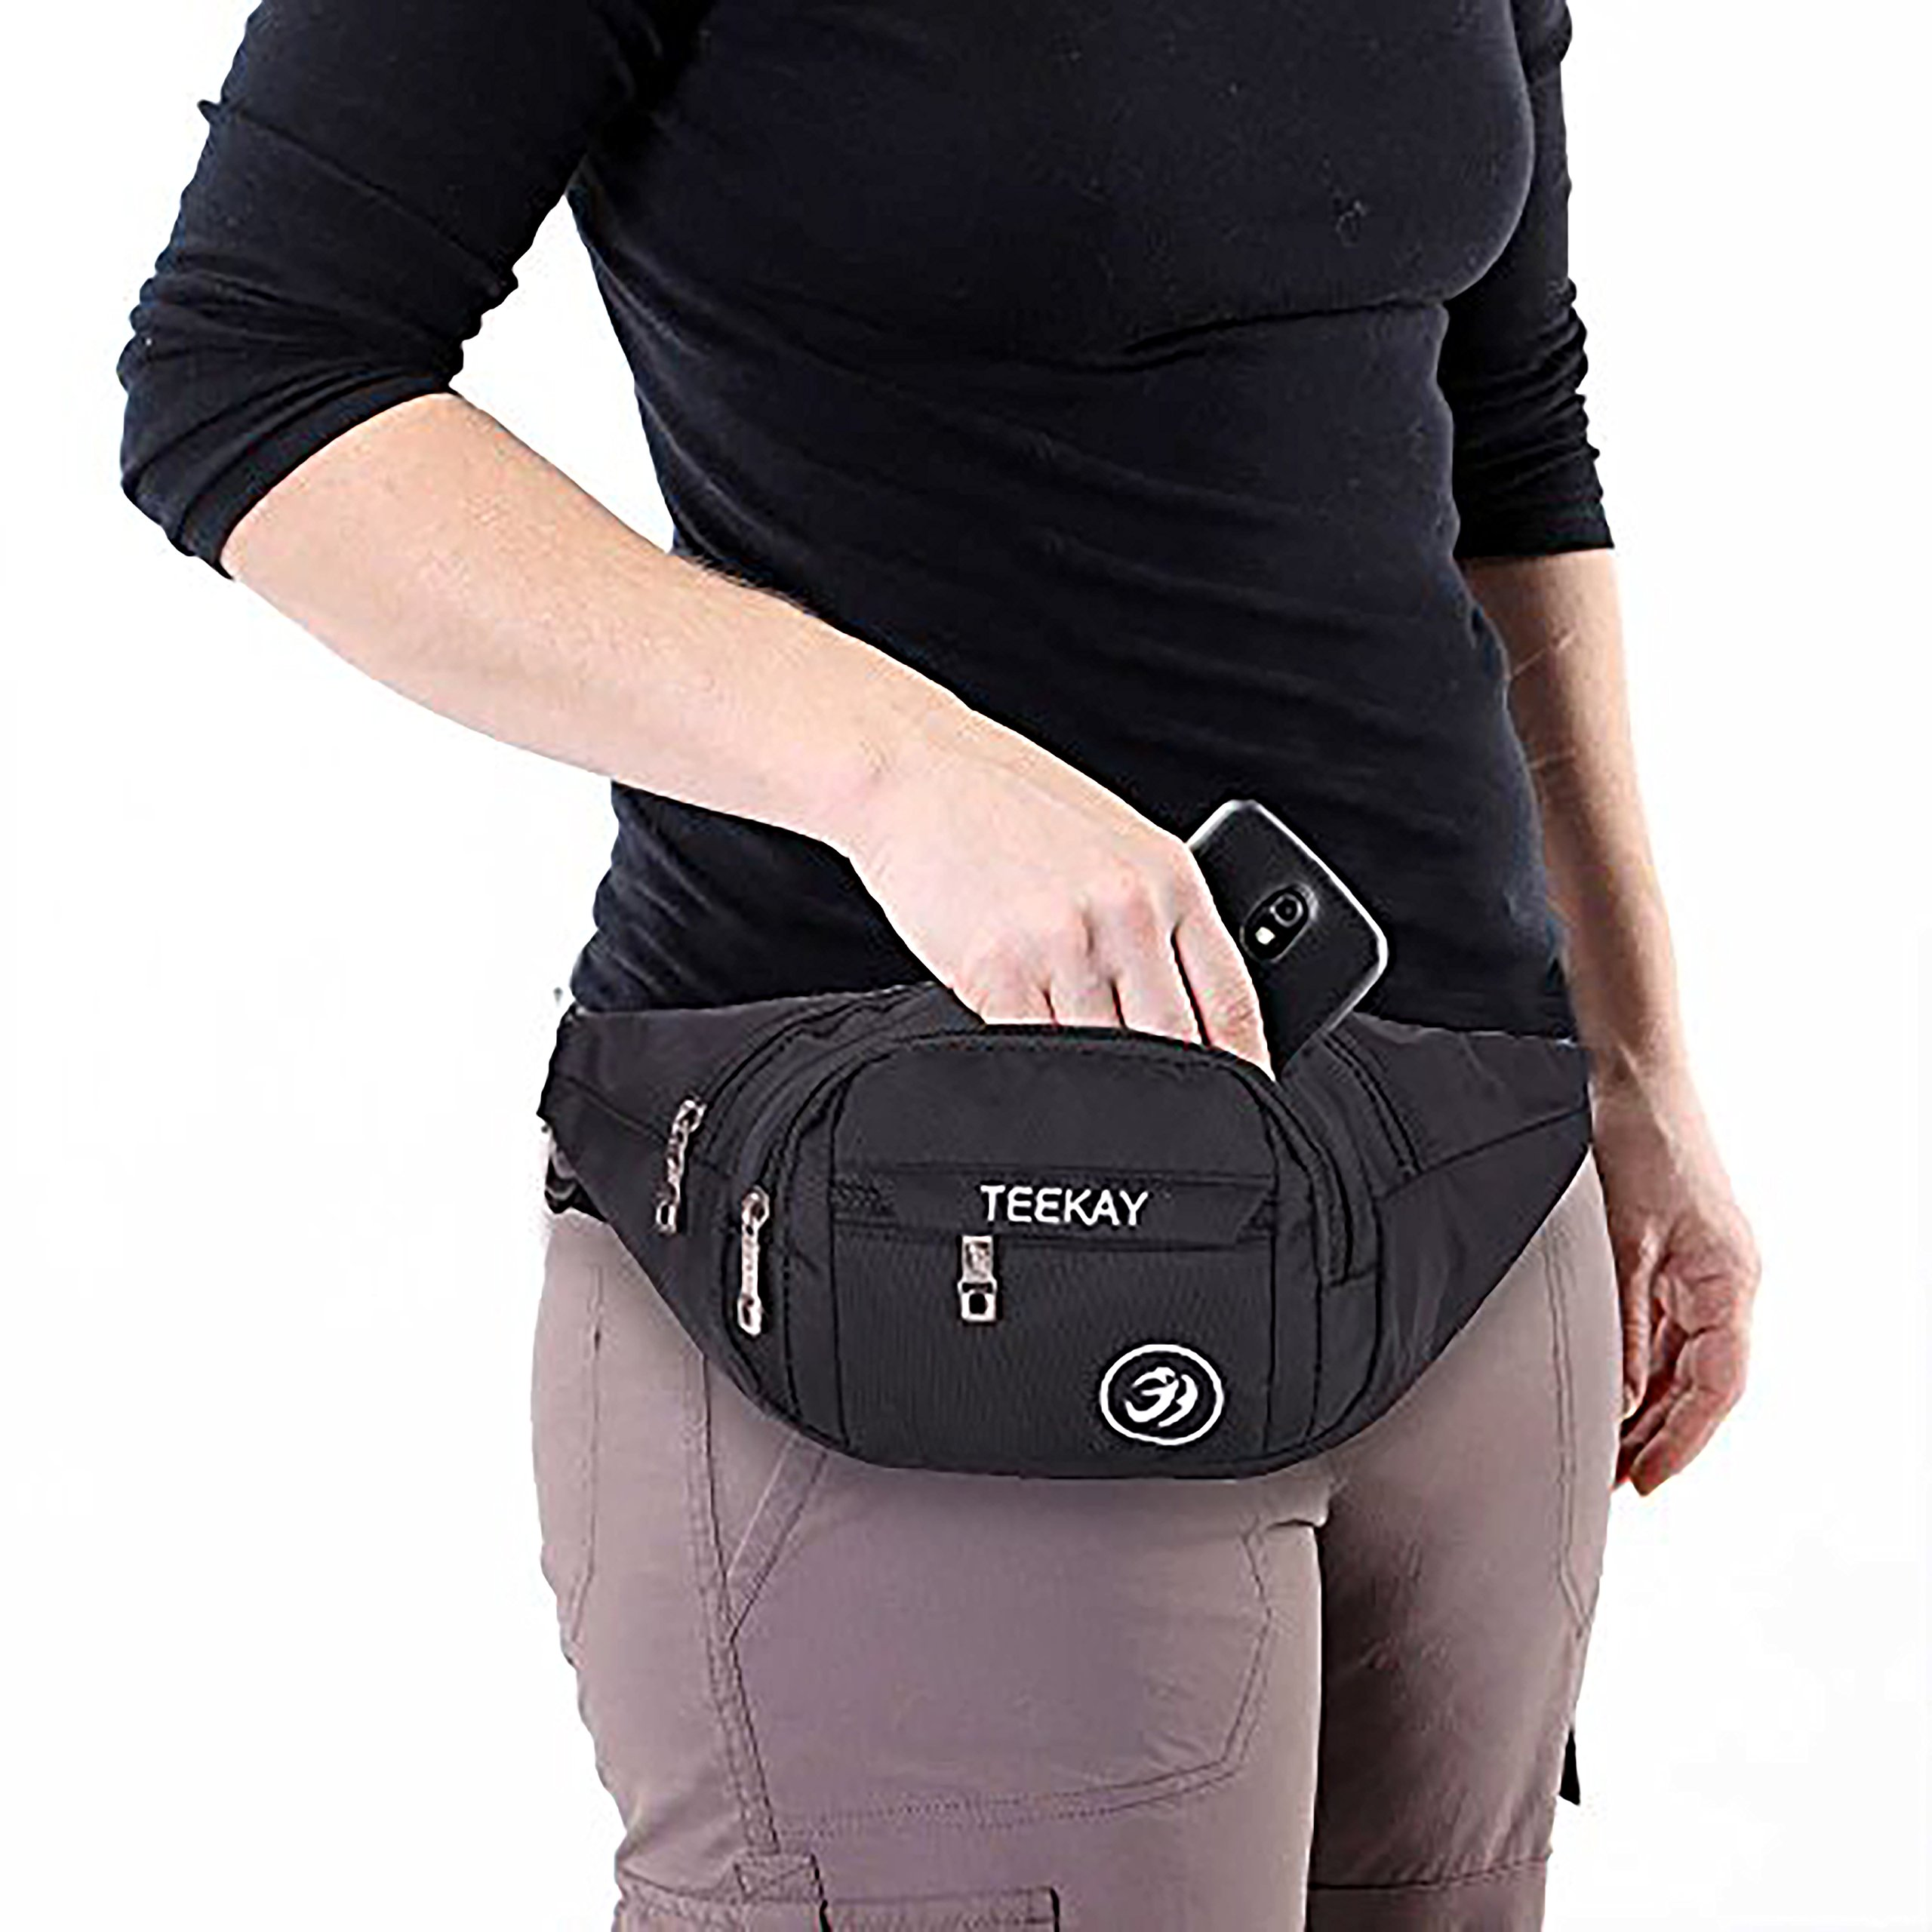 Waist Bag Fanny Pack Travel Belt Hip Pouch Purse for Men Women Running Walking Hiking by TeekayBrands (Image #3)